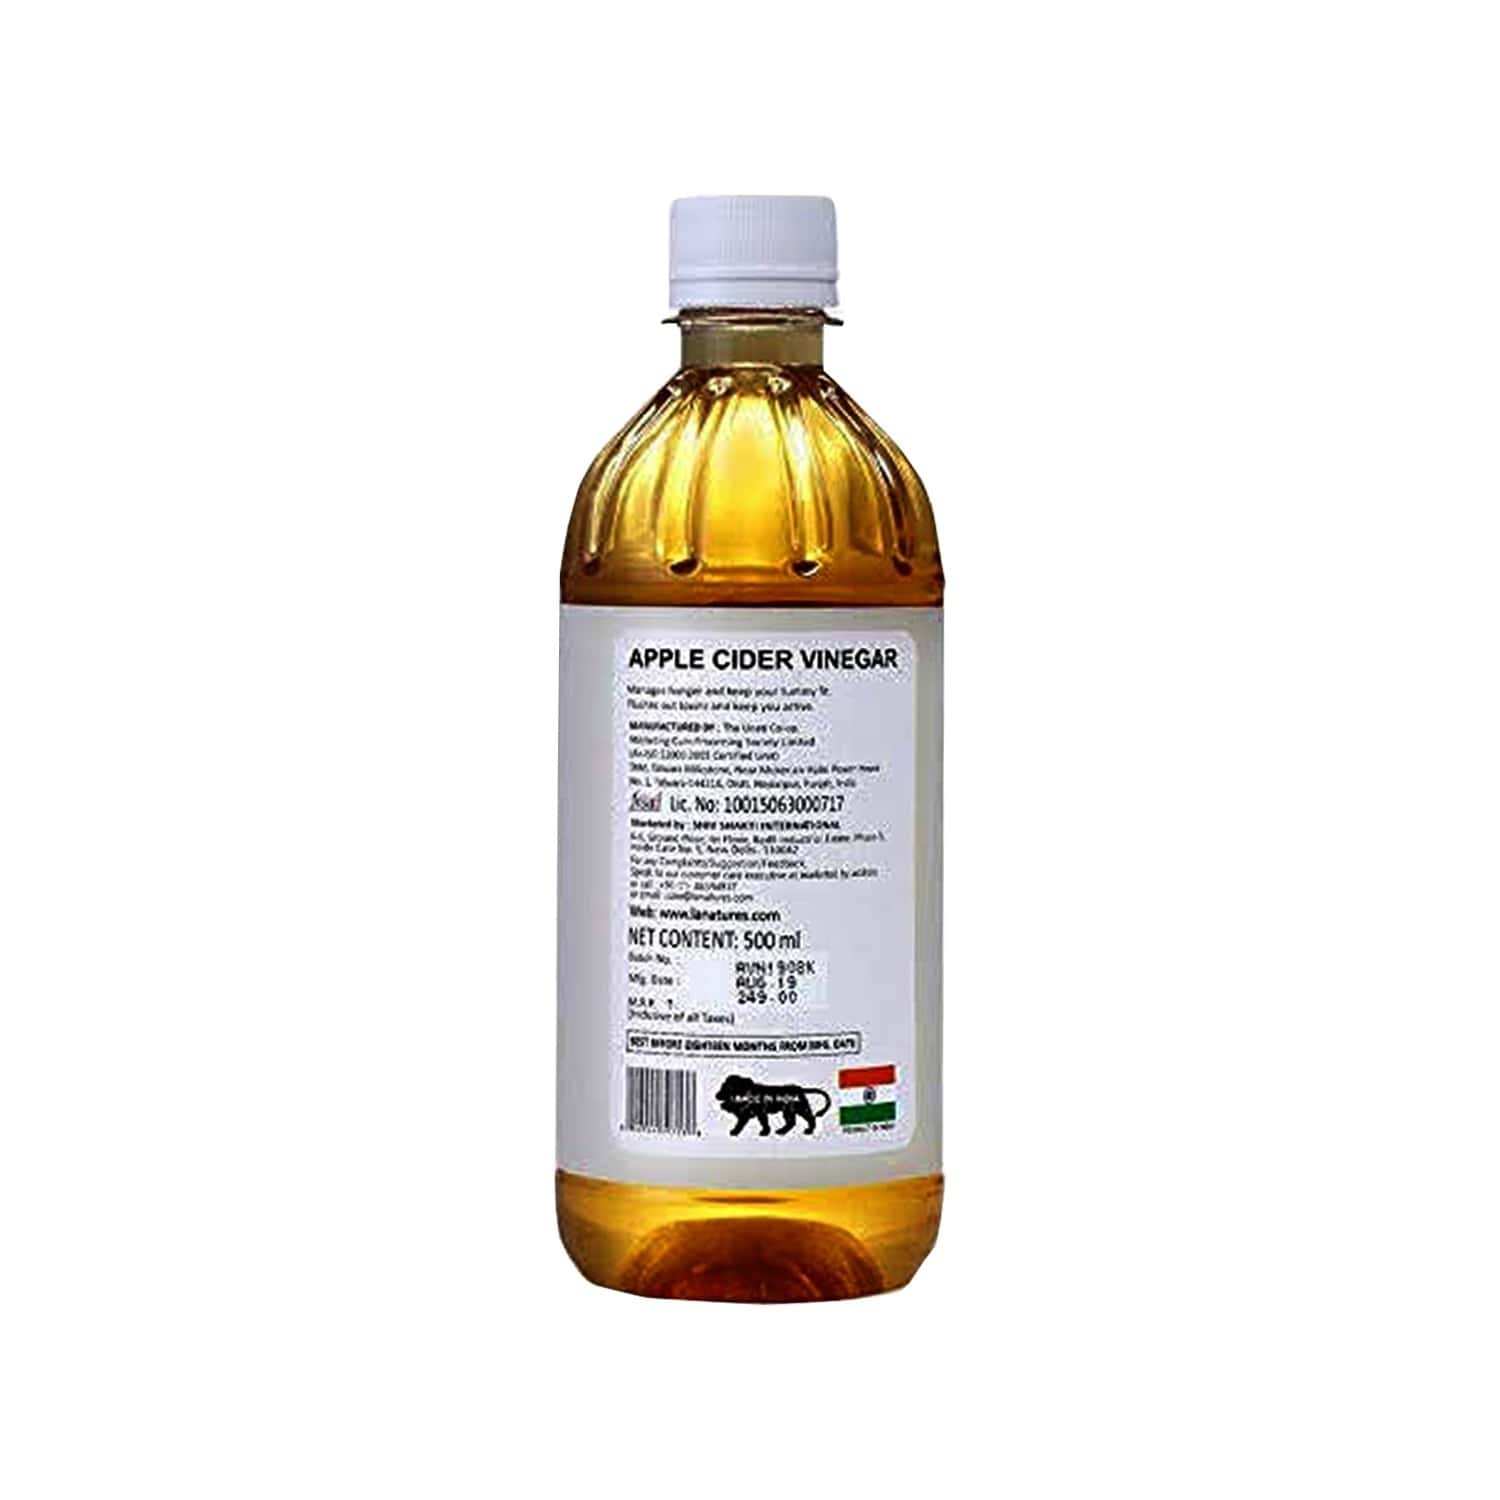 La Nature's Apple Cider Vinegar Filtered - 500ml